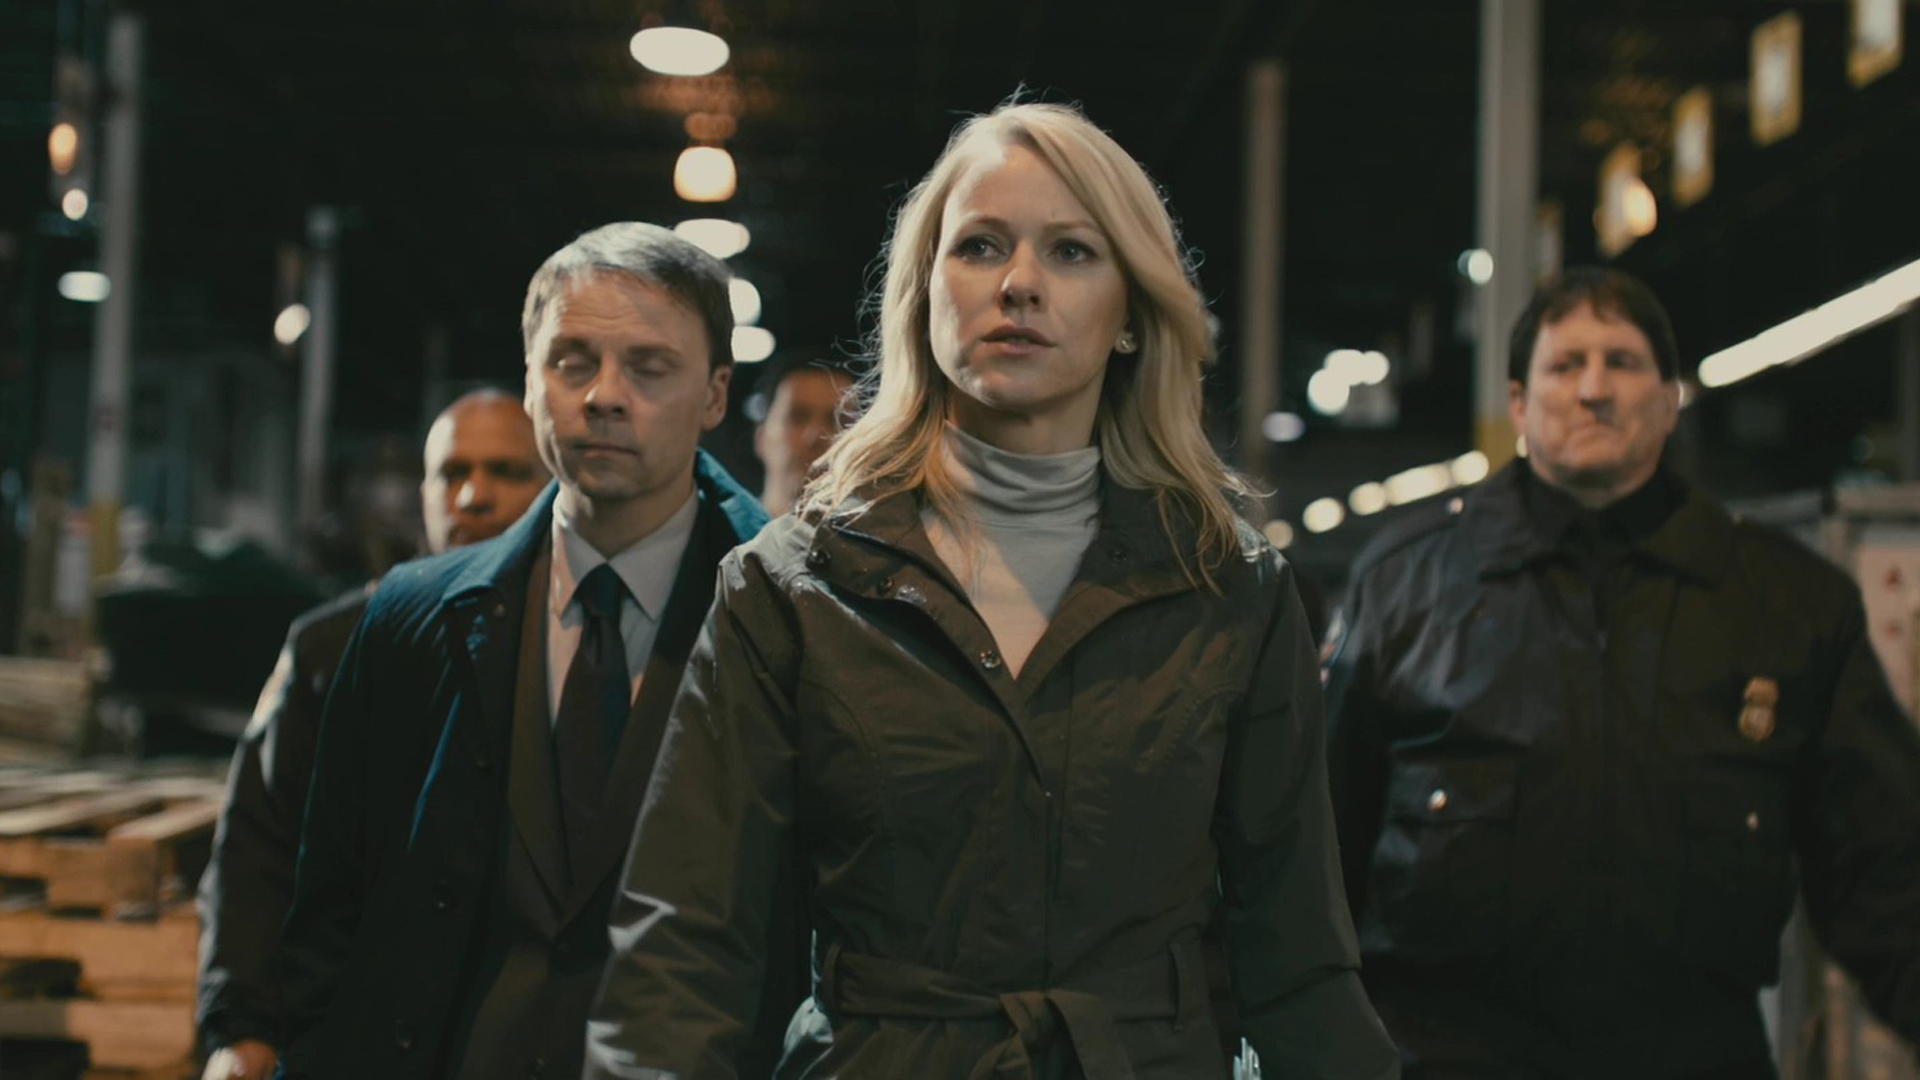 fair game film review Self-indulgent, self-satisfied and badly acted, doug liman's movie starring naomi watts and sean penn is the most ridiculous film of the year, says peter bradshaw.